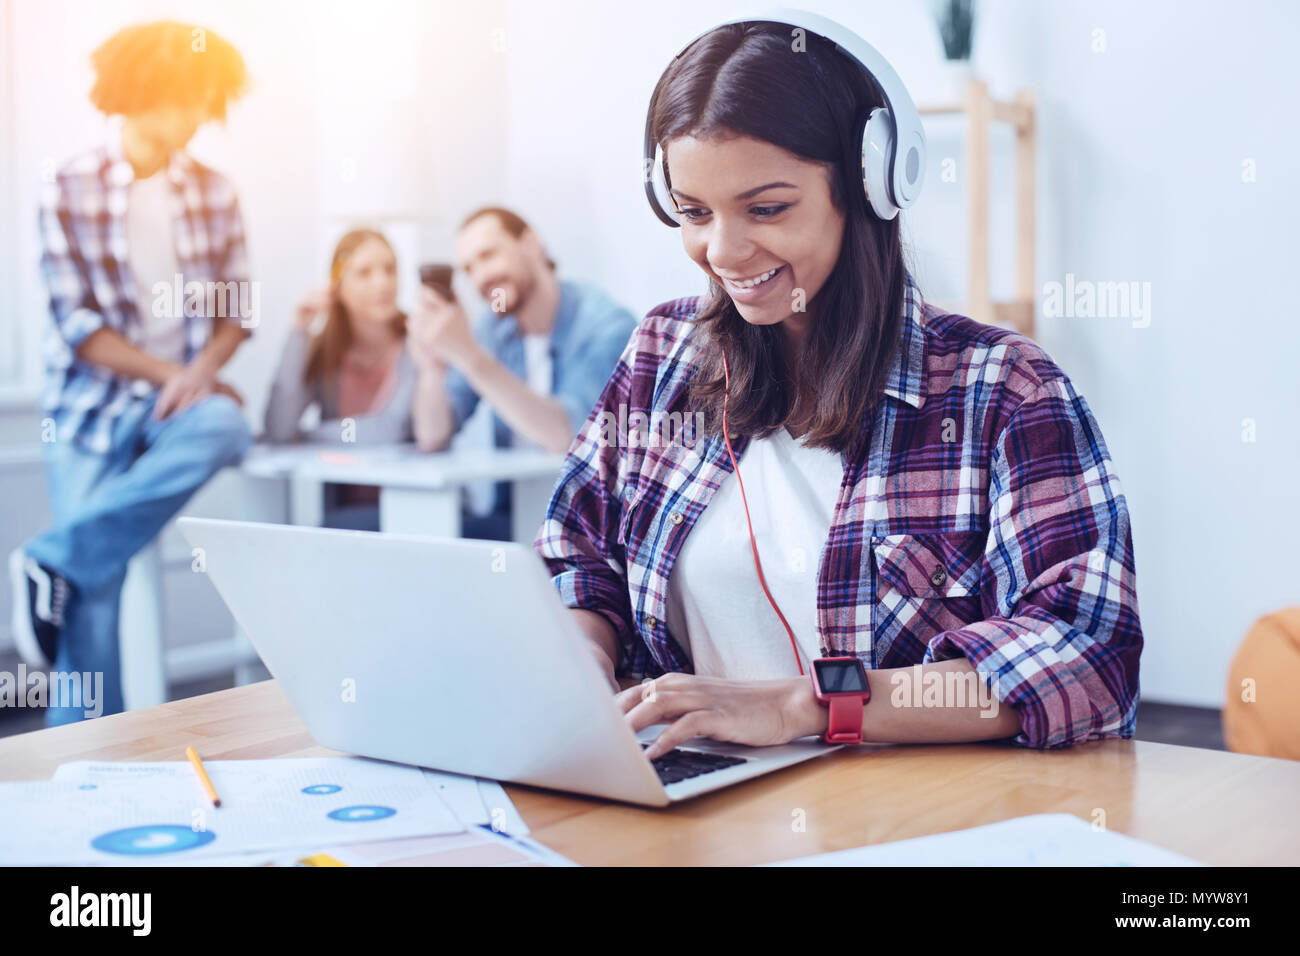 Delighted female wearing headphones while working - Stock Image